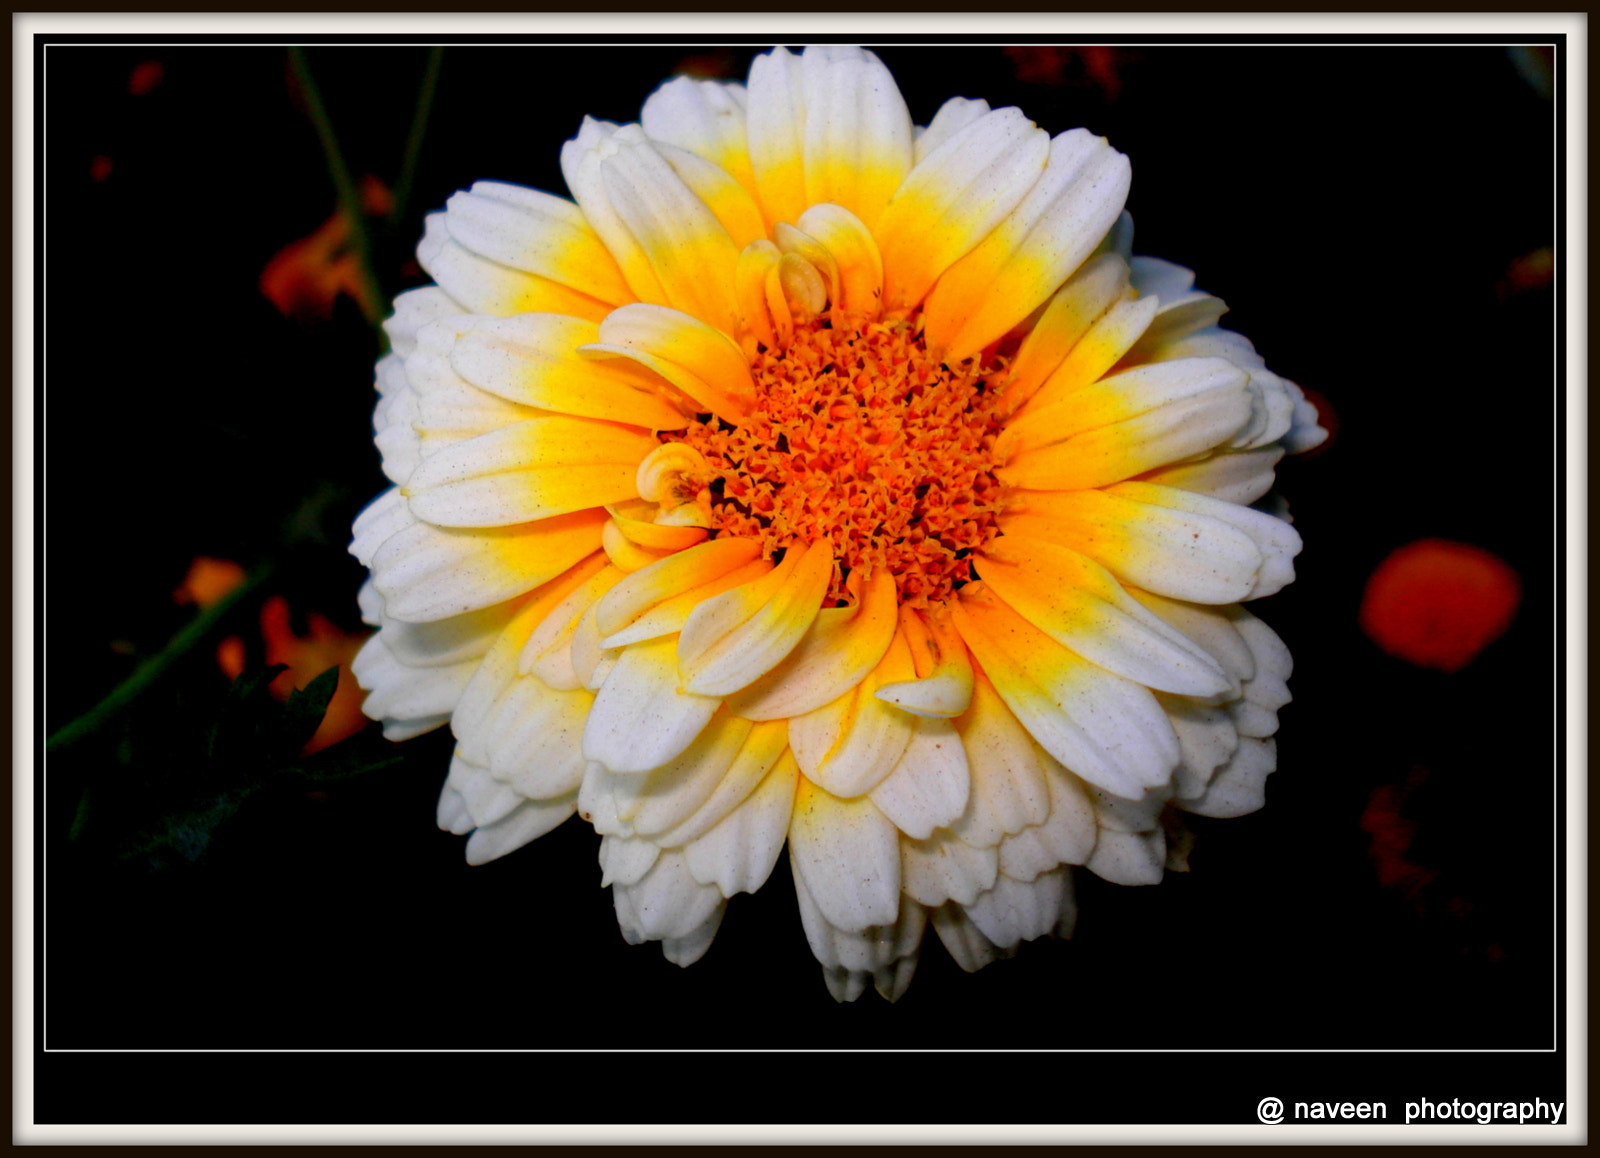 Photograph Friendship flower by naveen sharma on 500px